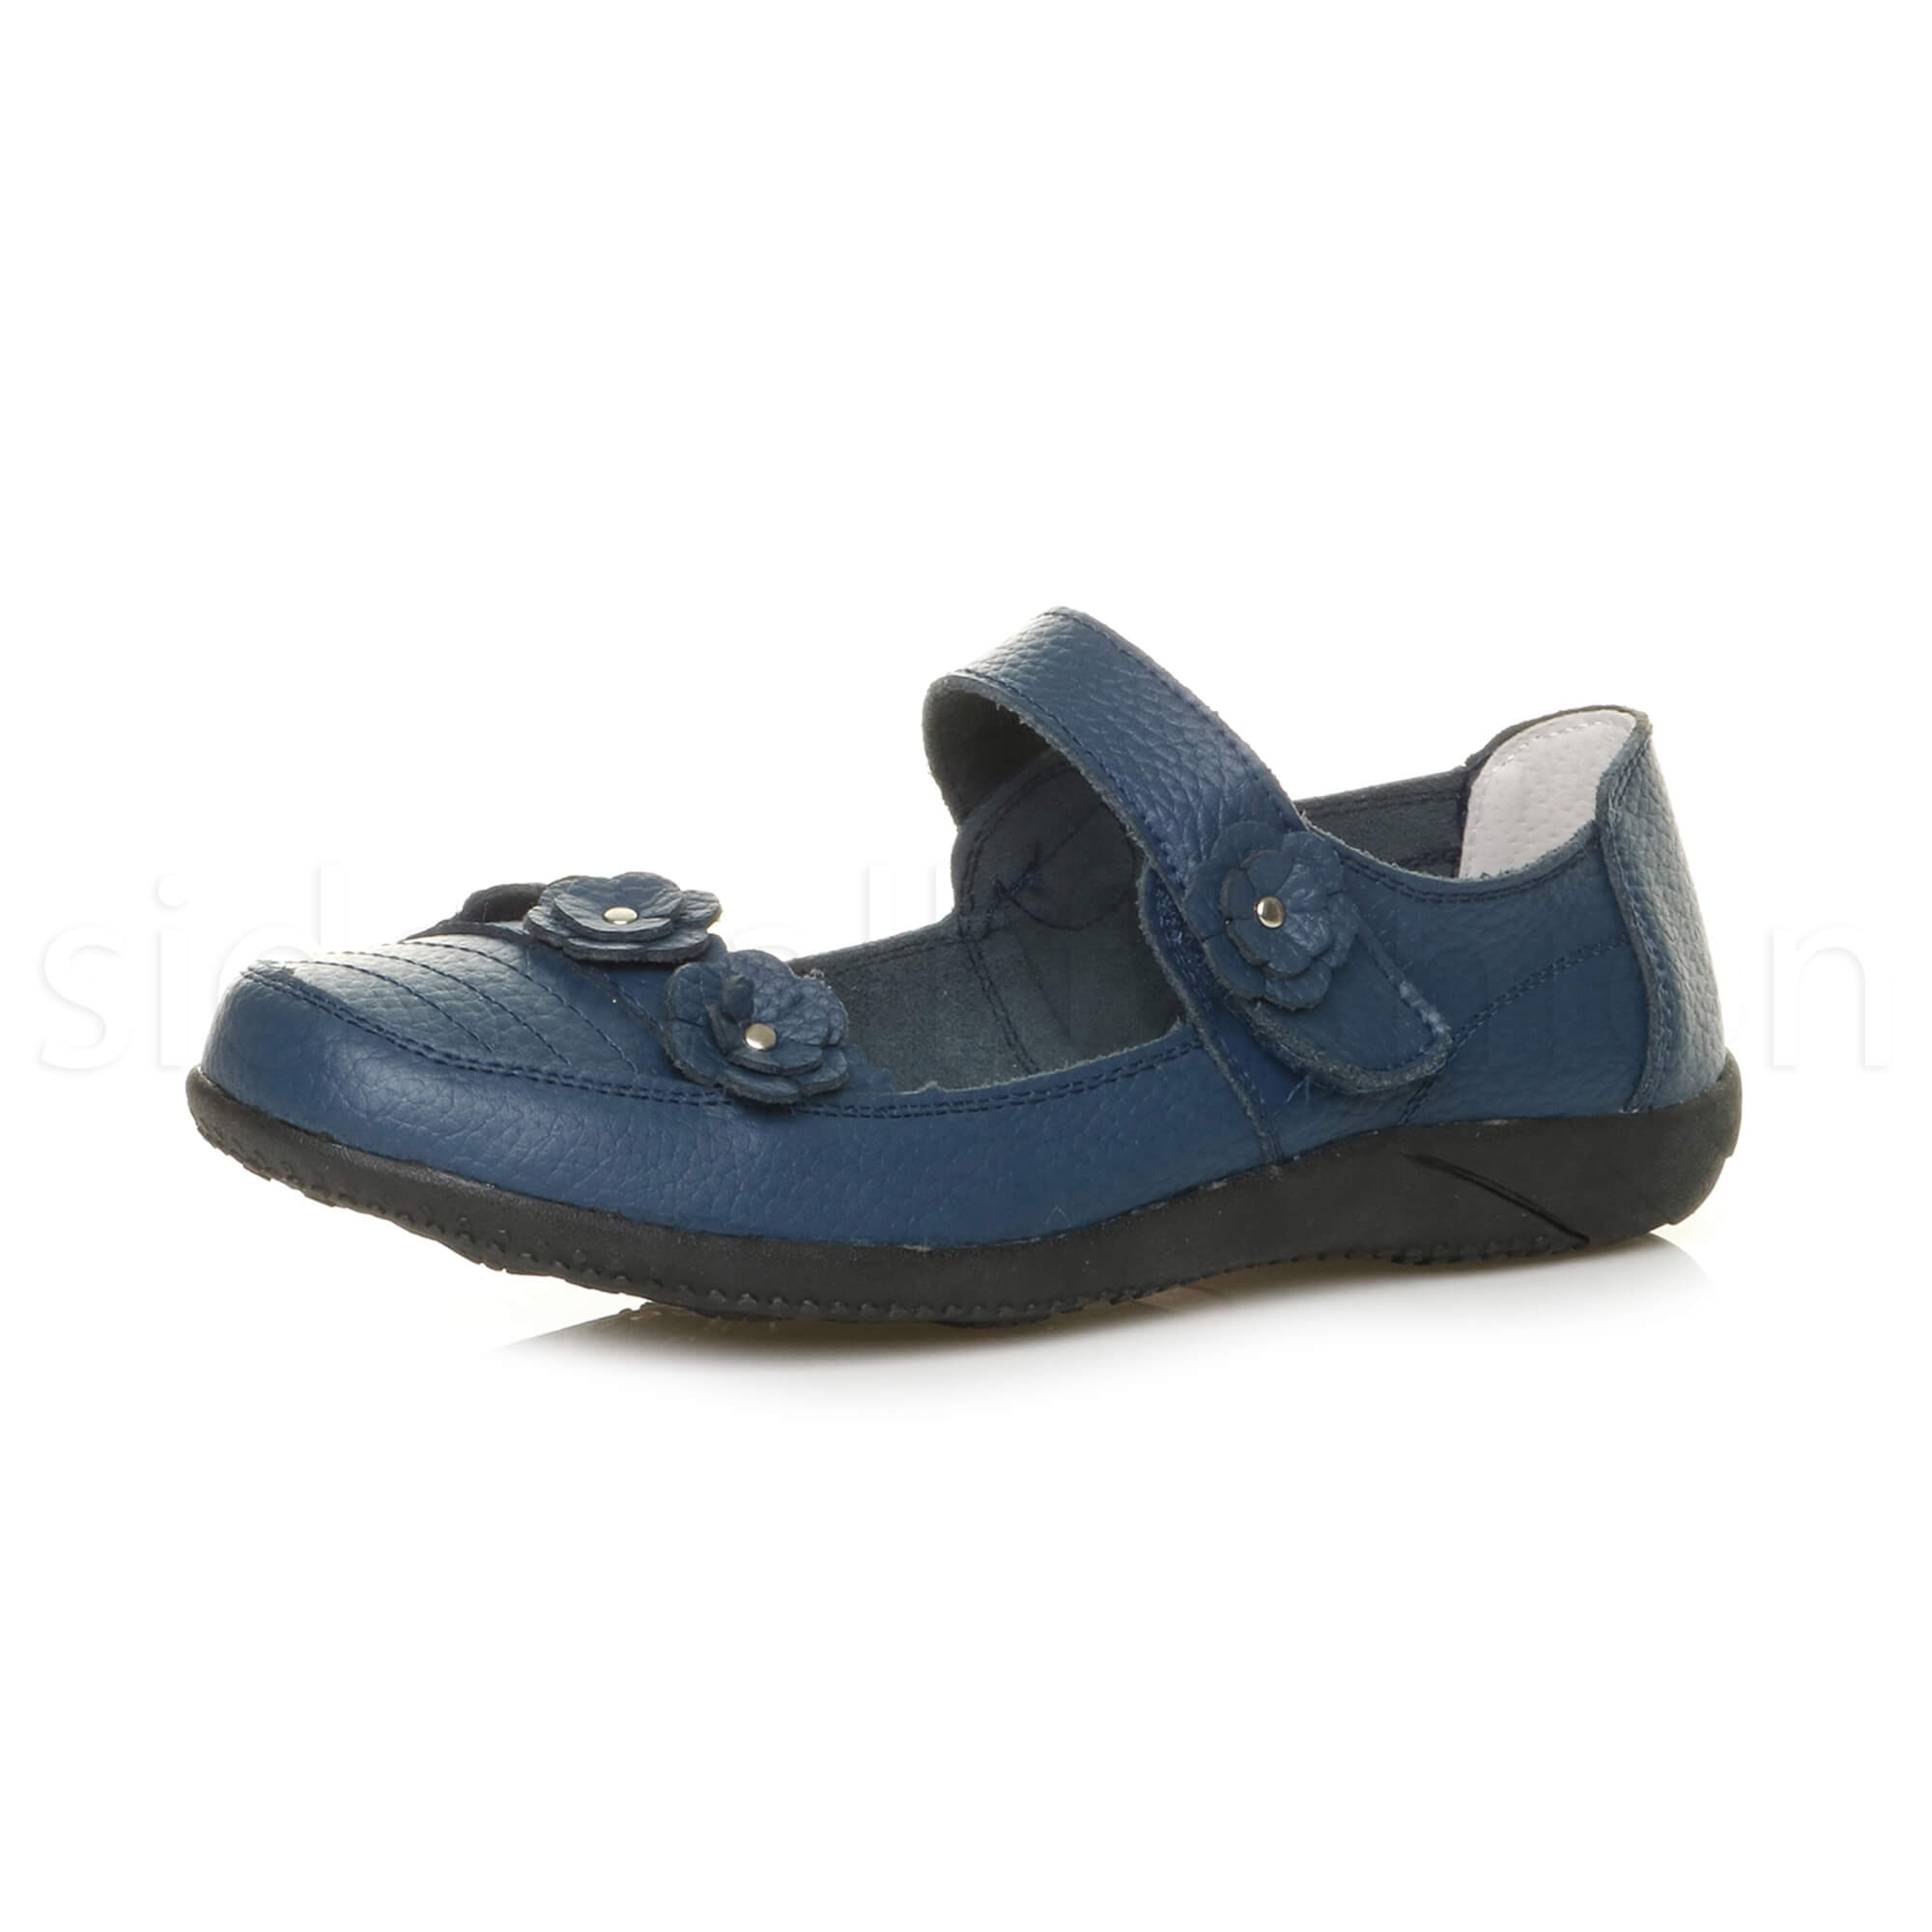 Womens-ladies-leather-comfort-walking-casual-sandals-mary-jane-strap-shoes-size thumbnail 32